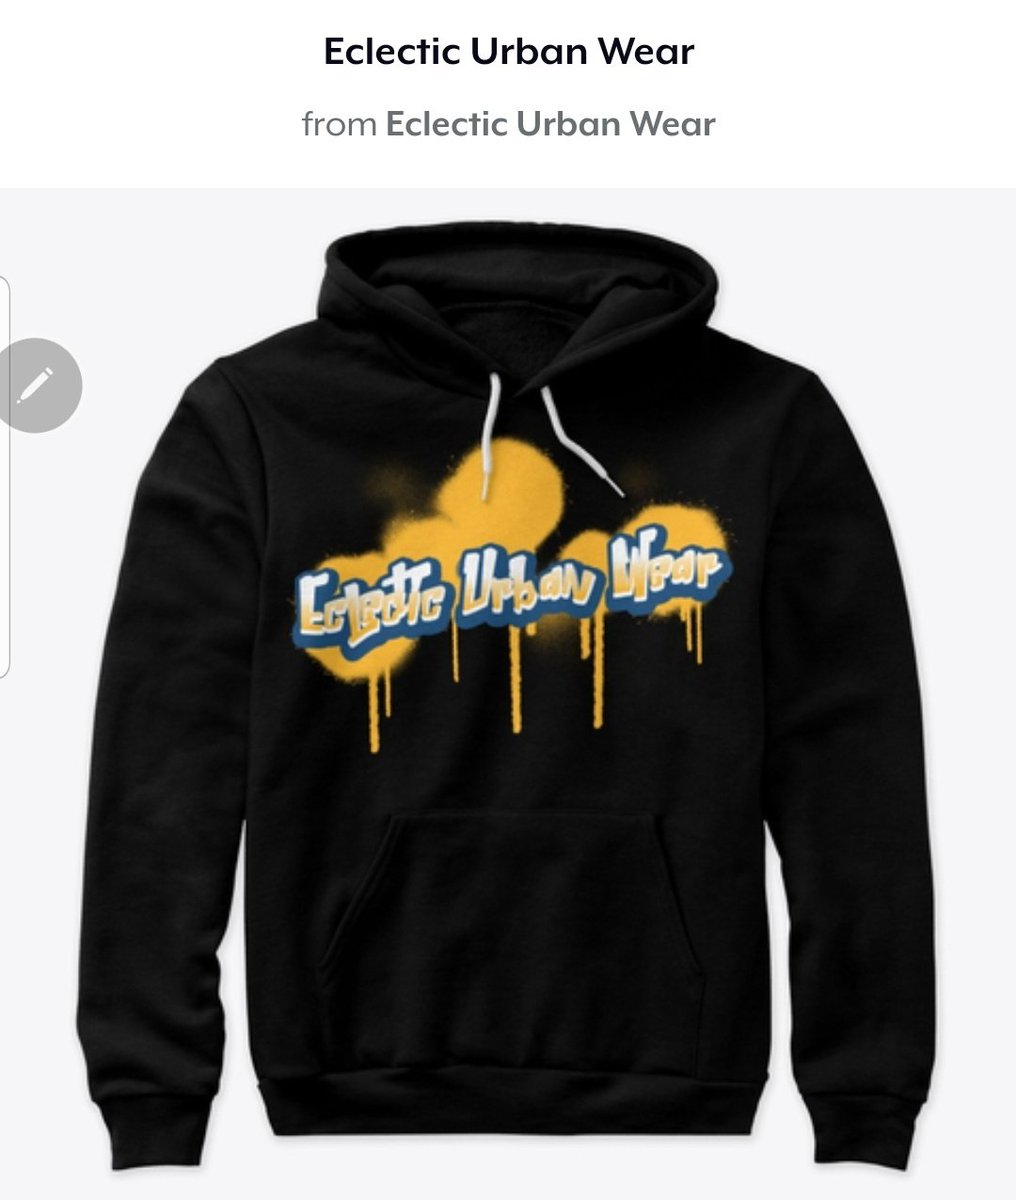 We want you to be comfortable with being comfortable. Shirt is available at https://teespring.com/stores/eclectic-urban-wear… #nyc #lookoftheday #feelgreat #feelgood #urbanwear #urbanbrand #comfort #aboutyou #beblessed #atlanta #eclecticurbanwear #sanfransisco #Motivation #Motivacion #healthychoicespic.twitter.com/g7BHmUAXlp